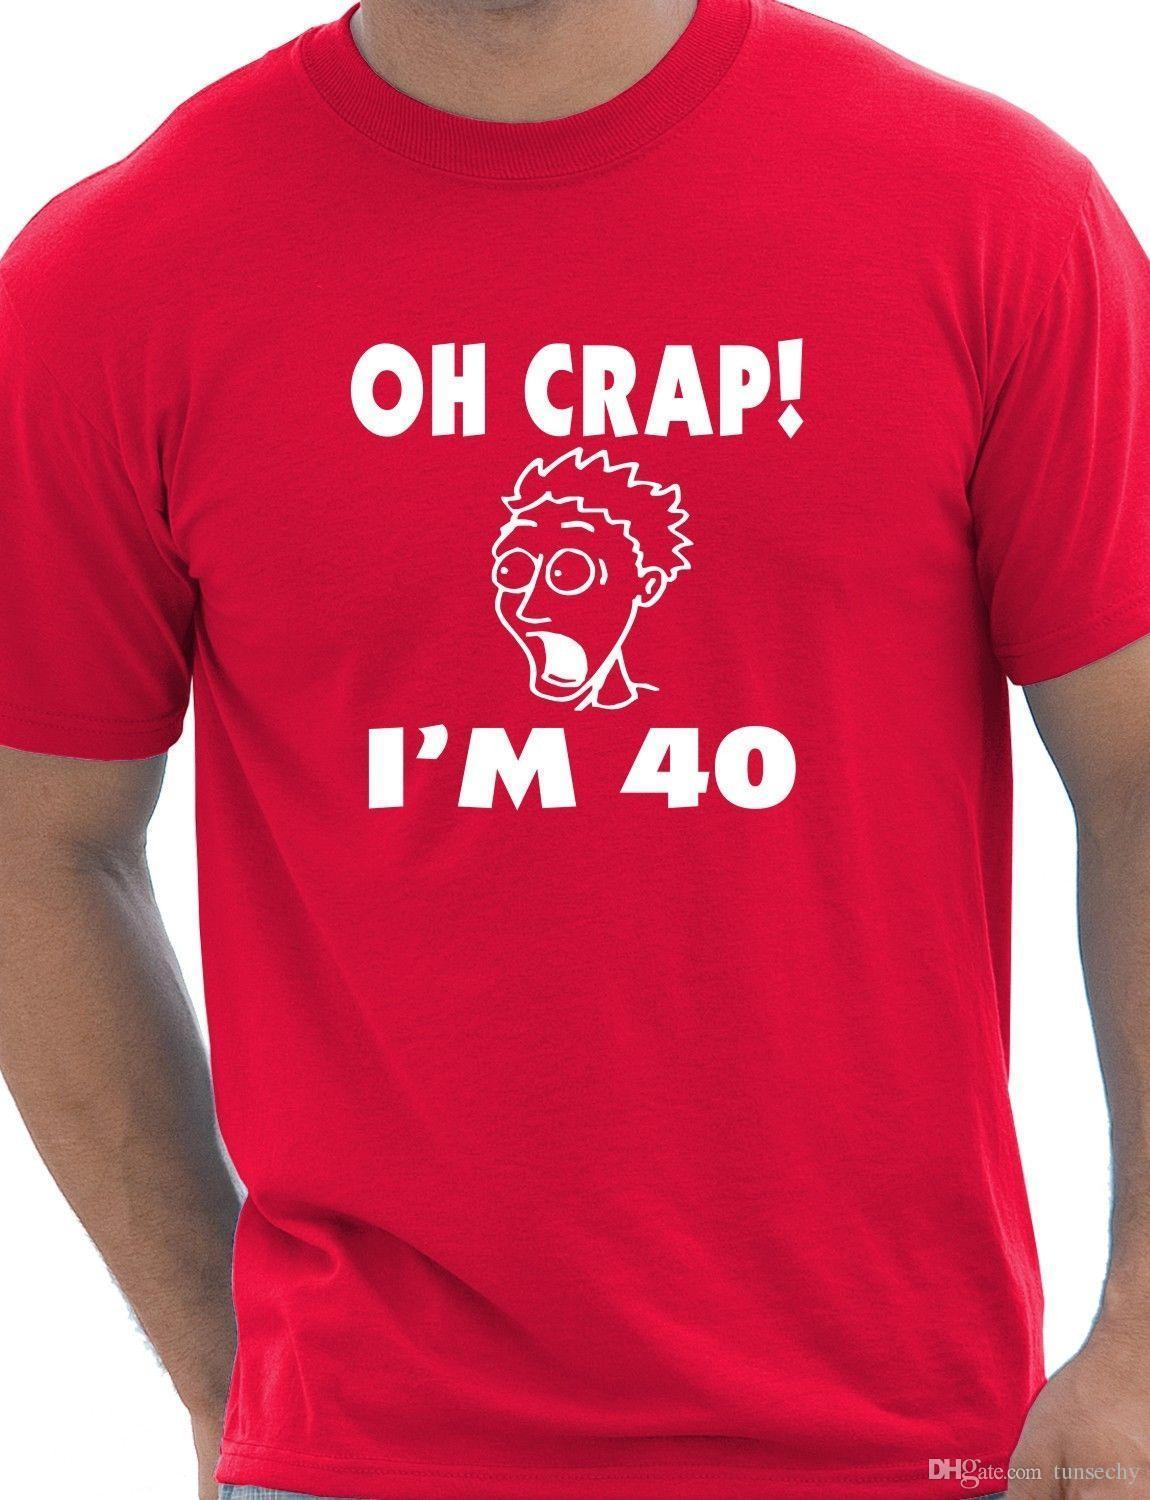 Oh Crap 40th Birthday Present Funny Mens Gift T Shirt Size S XXL 1 And From Jie80 1467